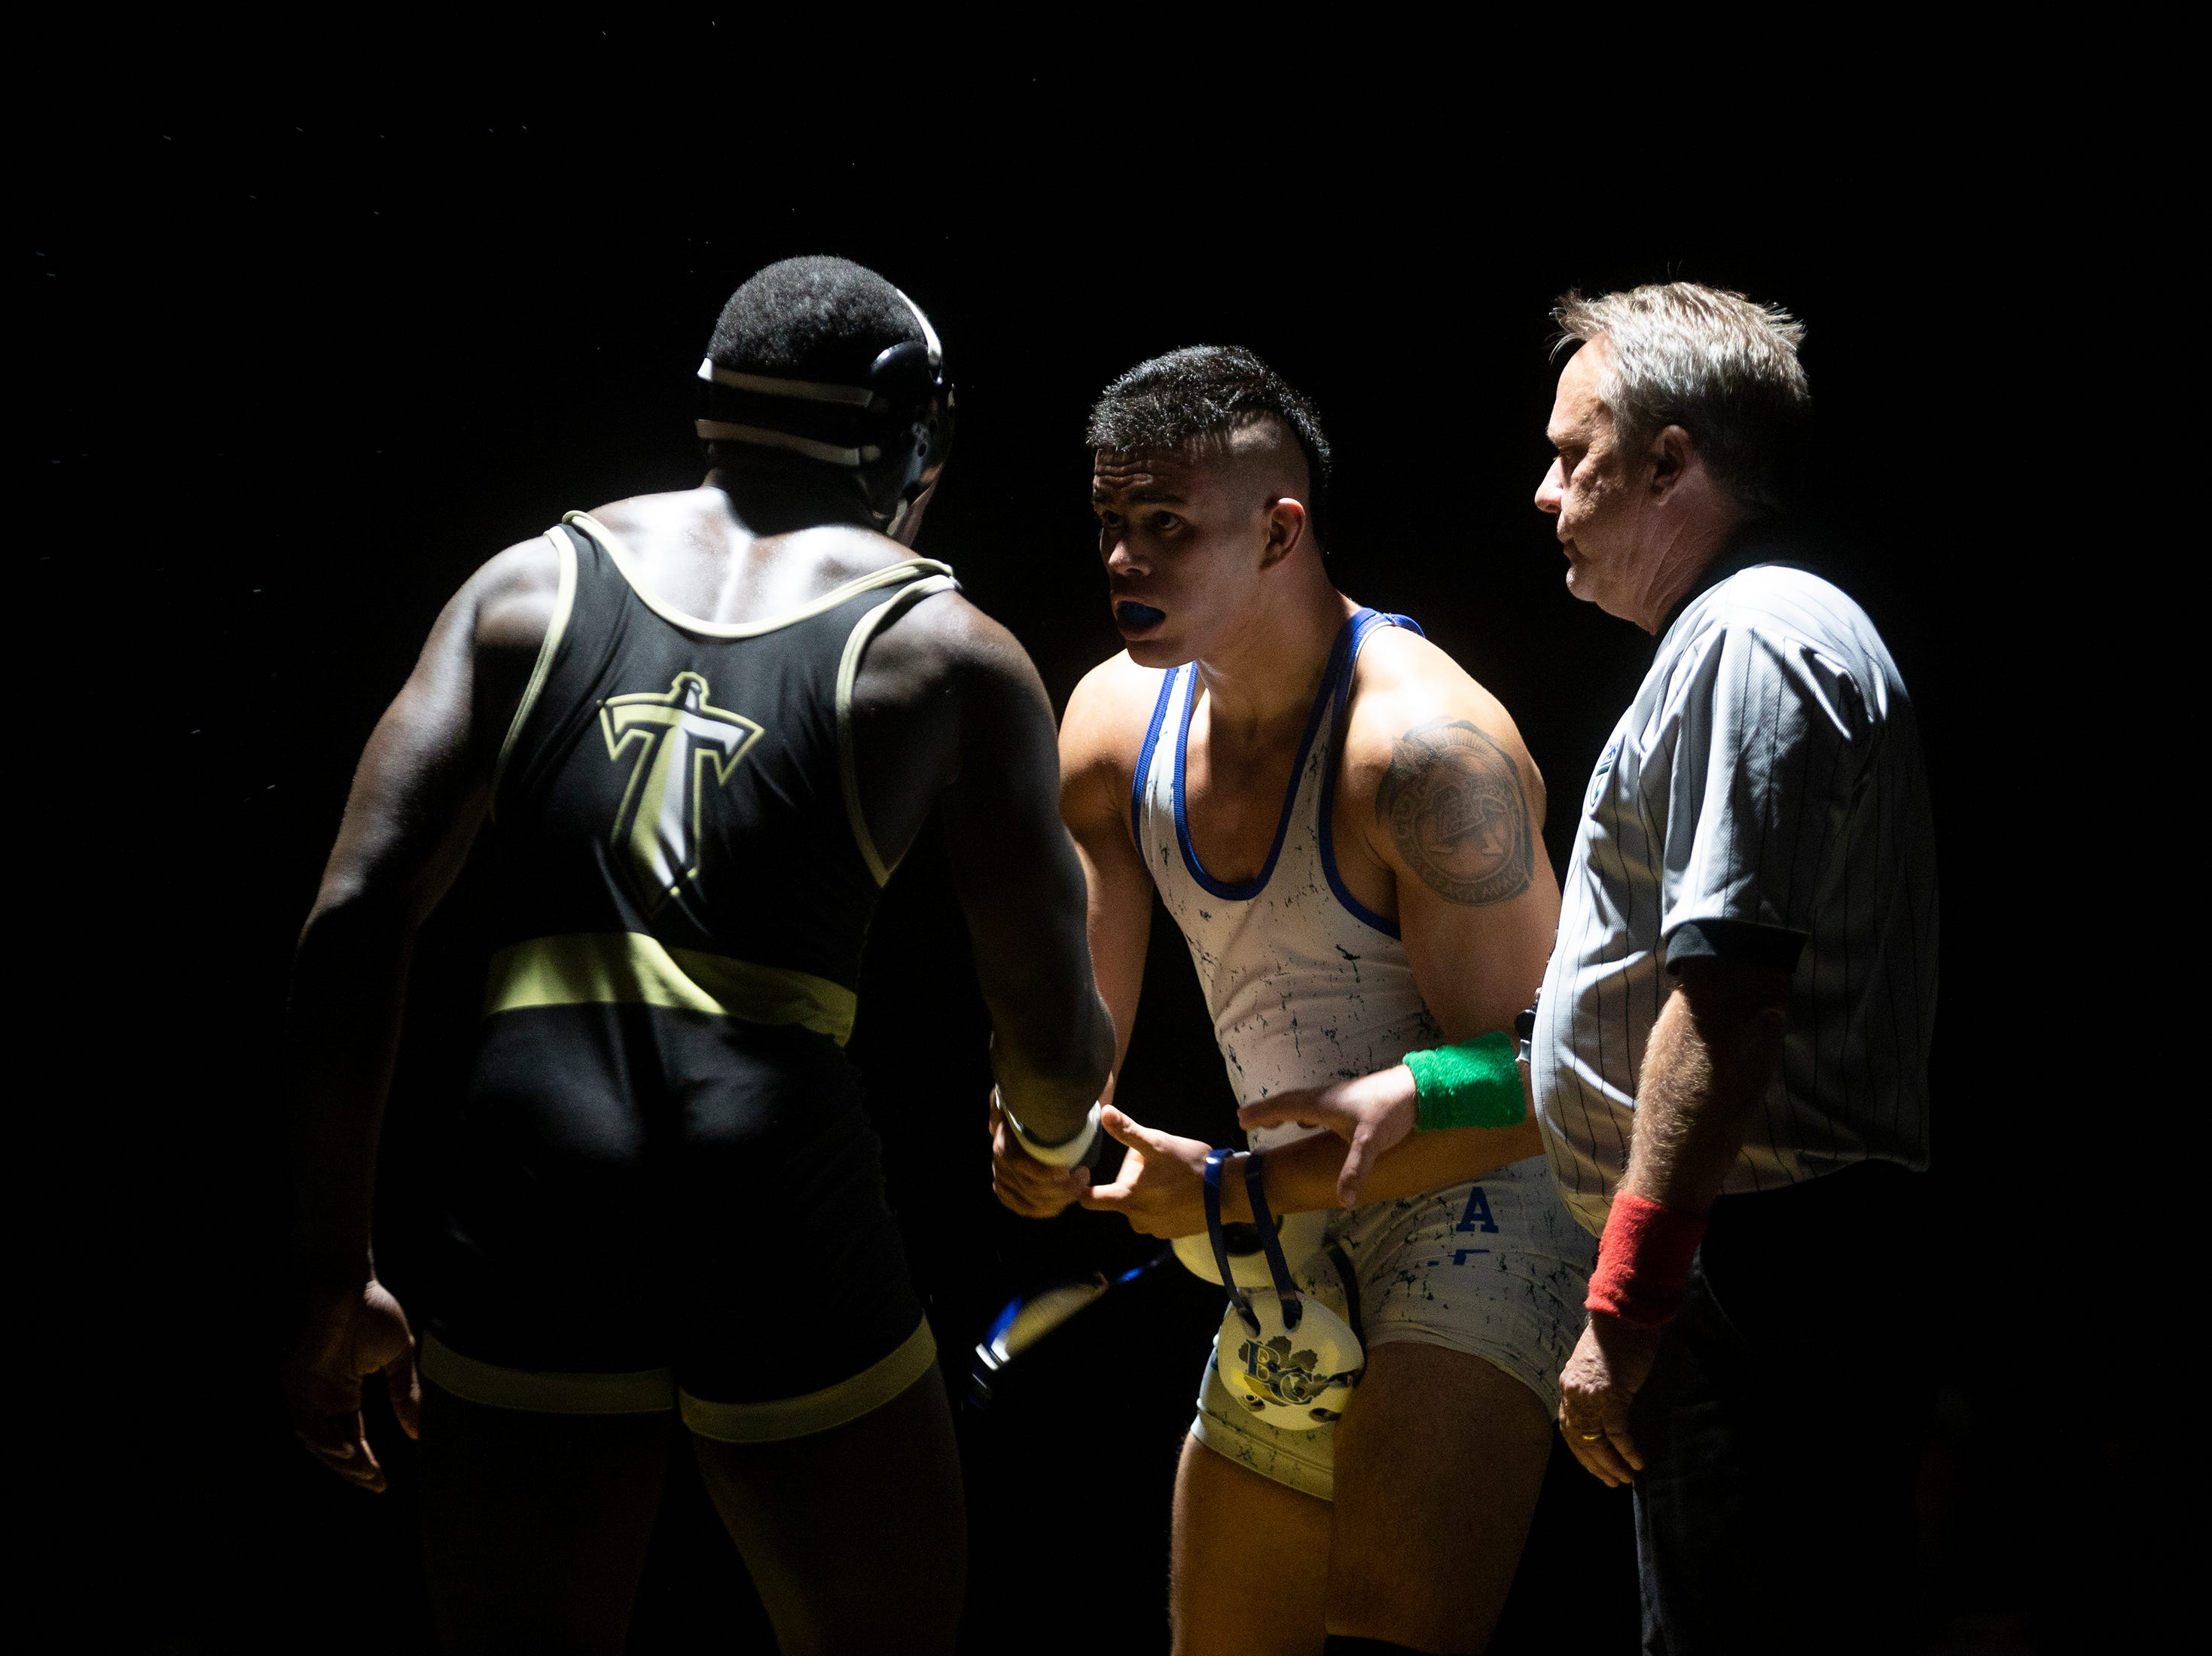 Barron G. Collier High School's Malcow Casas shakes hands with Golden Gate's Kevin Jean Jacques after winning his match in the 195-pound weight class at the Collier County Athletic Conference wrestling championship, Wednesday, Jan. 9, 2018, at Naples High School.